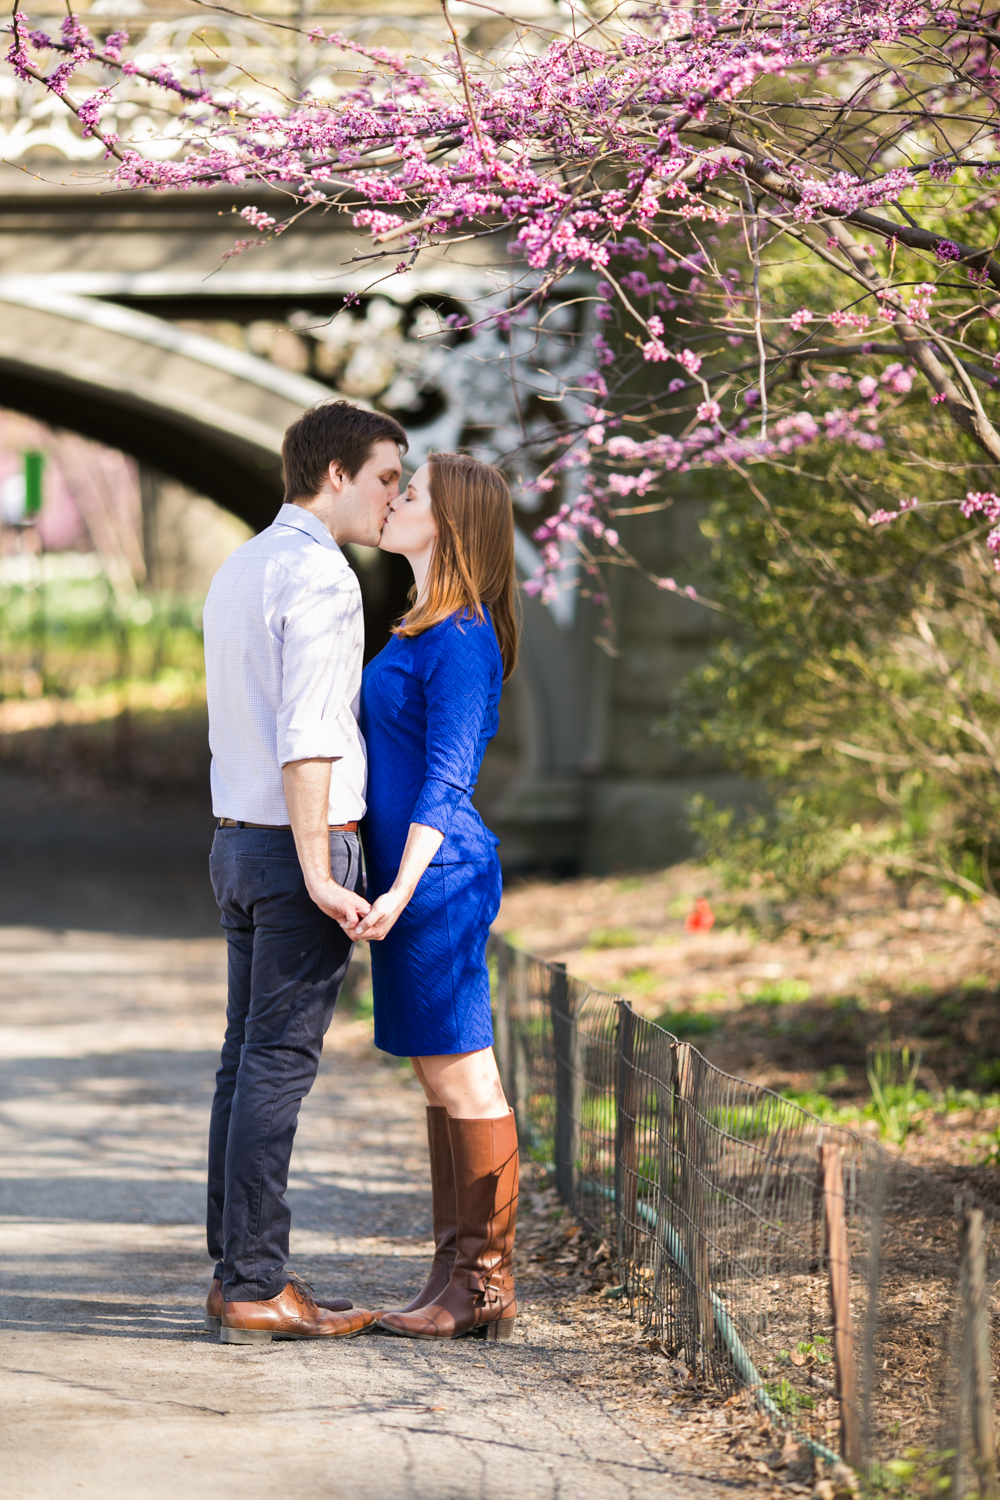 Central-Park-engagement-photos 2.jpg